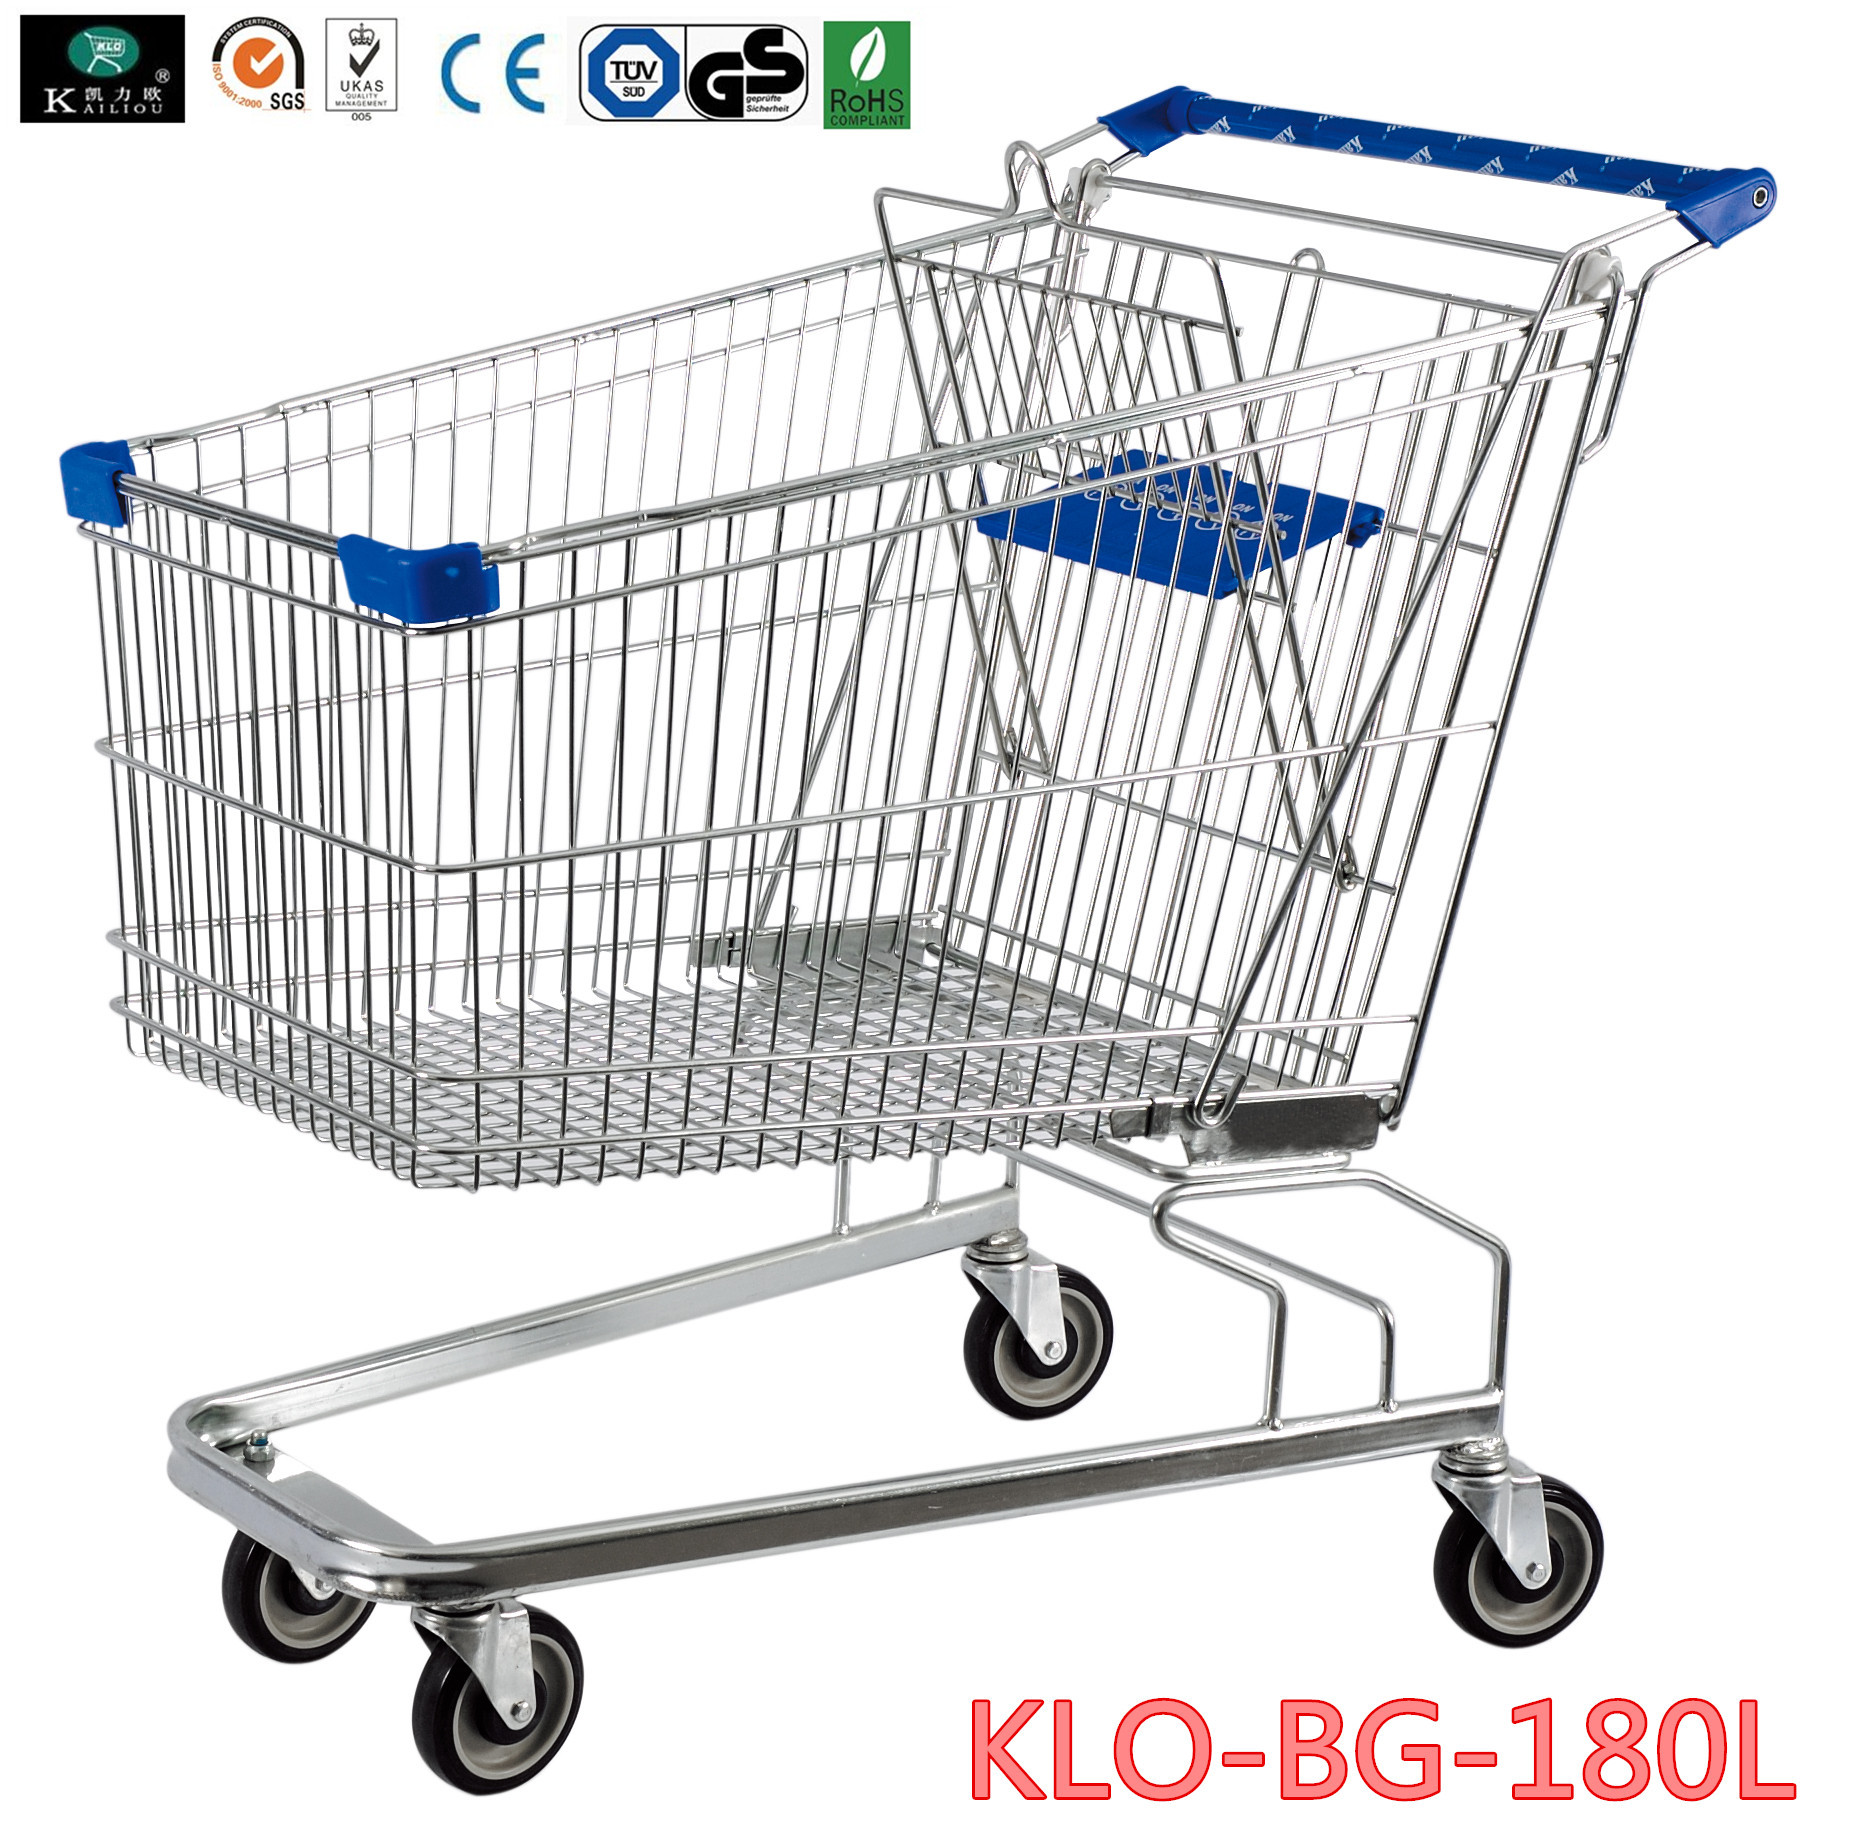 180 Liter Large Wire Mesh Supermarket Shopping Cart With Baby Seat